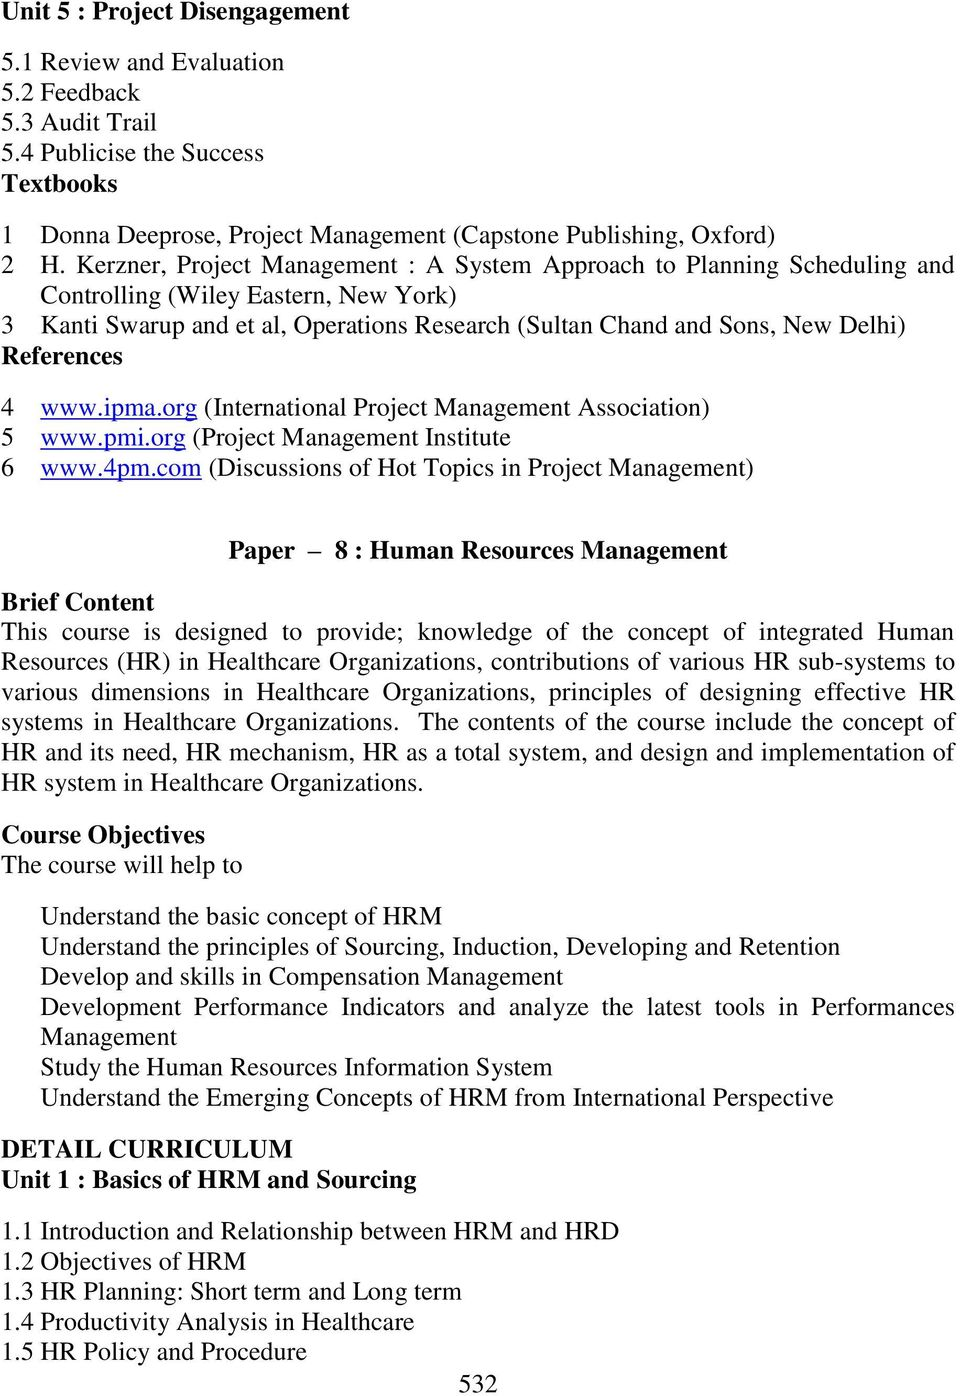 director resume format coaching resume sles for